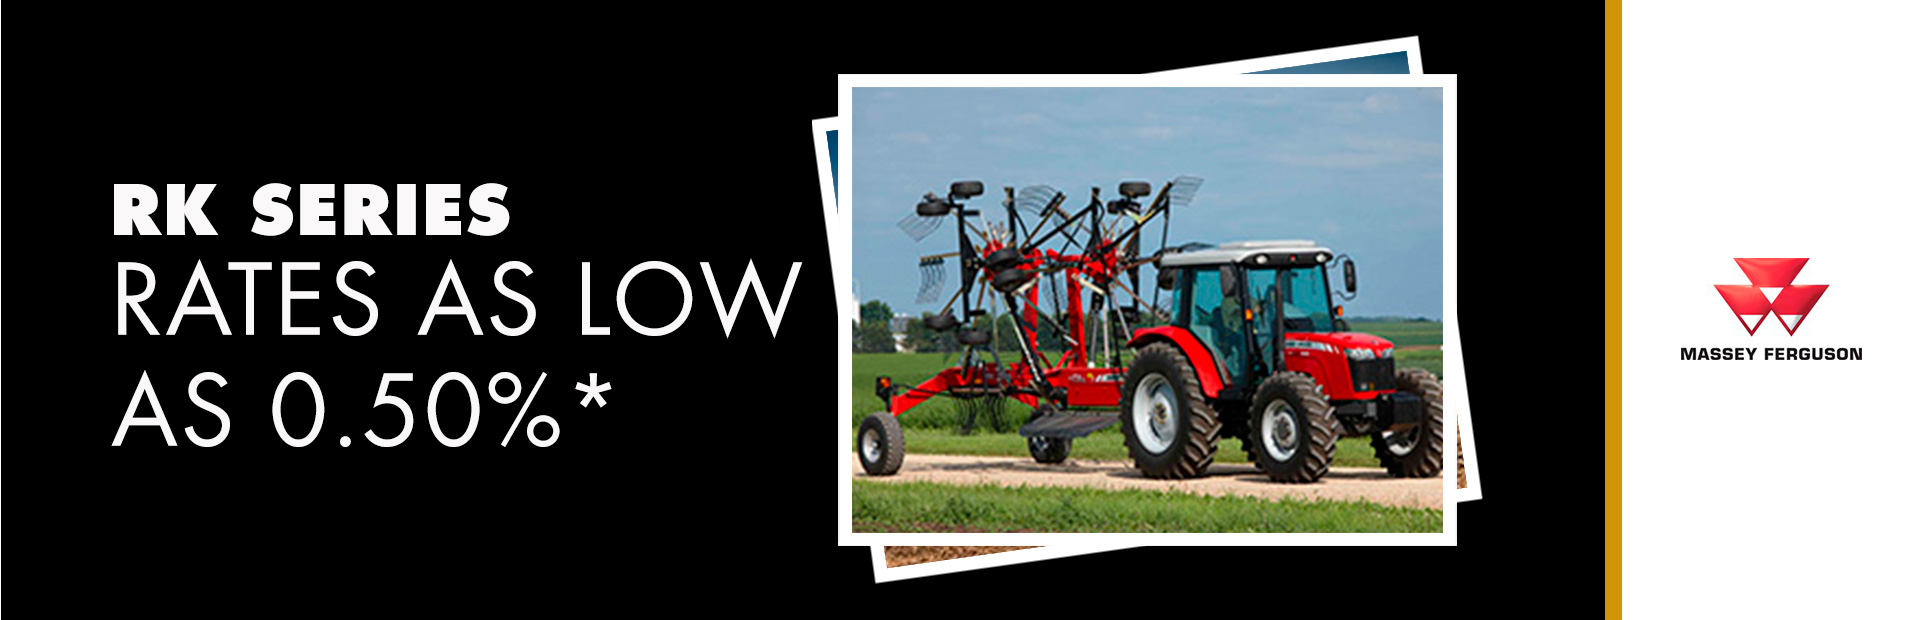 Massey Ferguson: RK Series - Rates as low as 0.50%